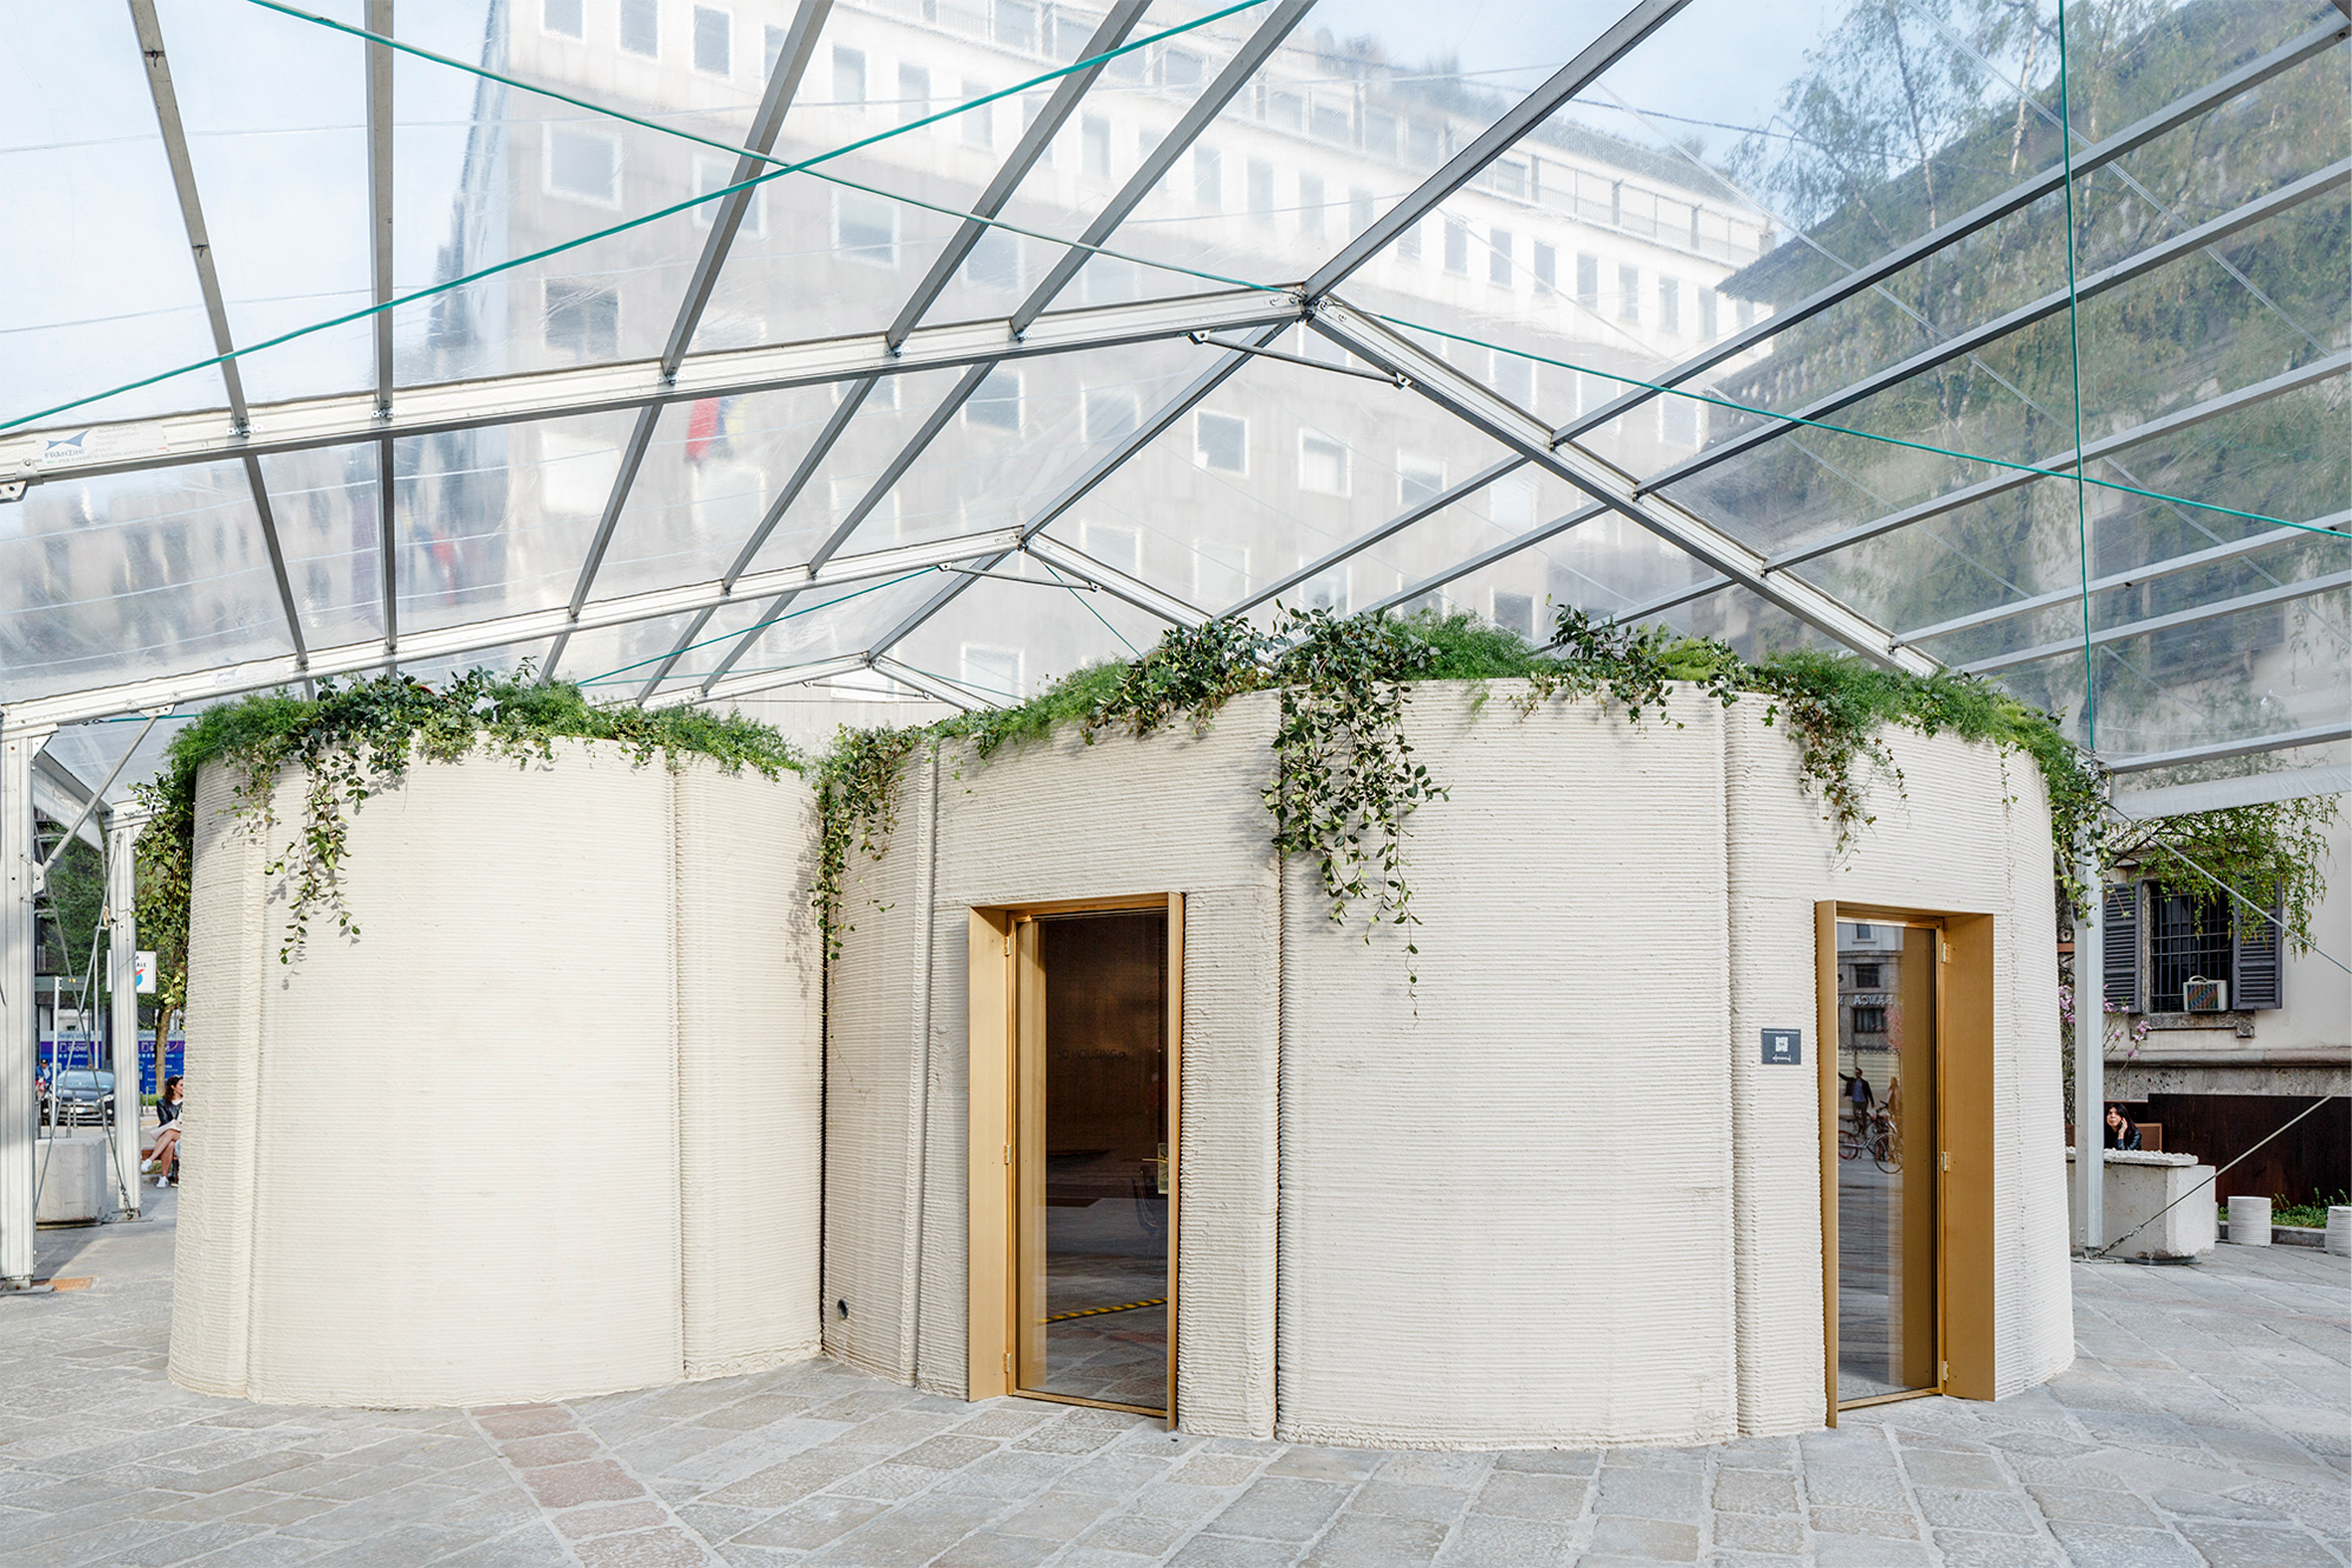 Arup and CLS Architetti's 3D-printed house was built in a week